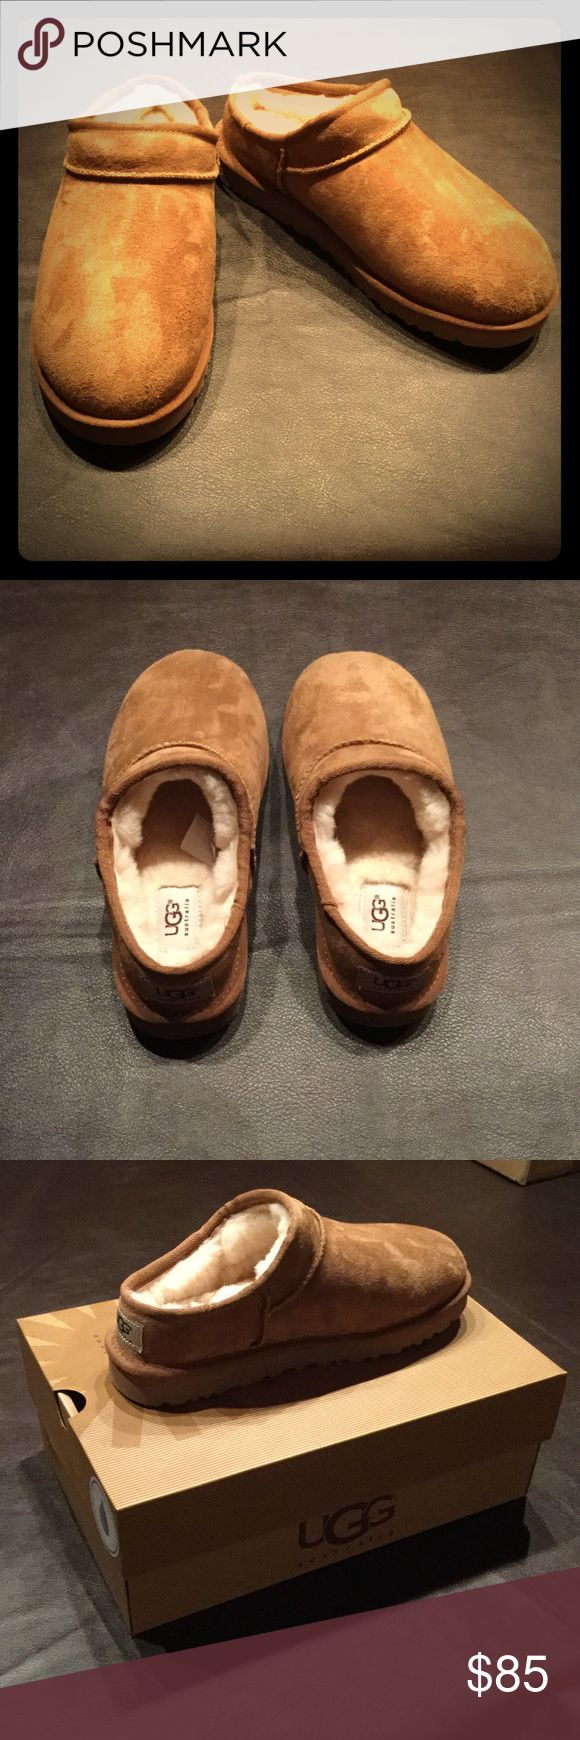 🎀NIB UGG Classic Slipper🎀 Awesome & cozy pair of brand new UGG classic slippers with hard soles in the color chestnut. Bought these for my mom for Christmas but they were a size too small for her. Size 7 from a smoke FREE home as always! 💕 PRICE FIRM & NO TRADES PLEASE! UGG Shoes Slippers